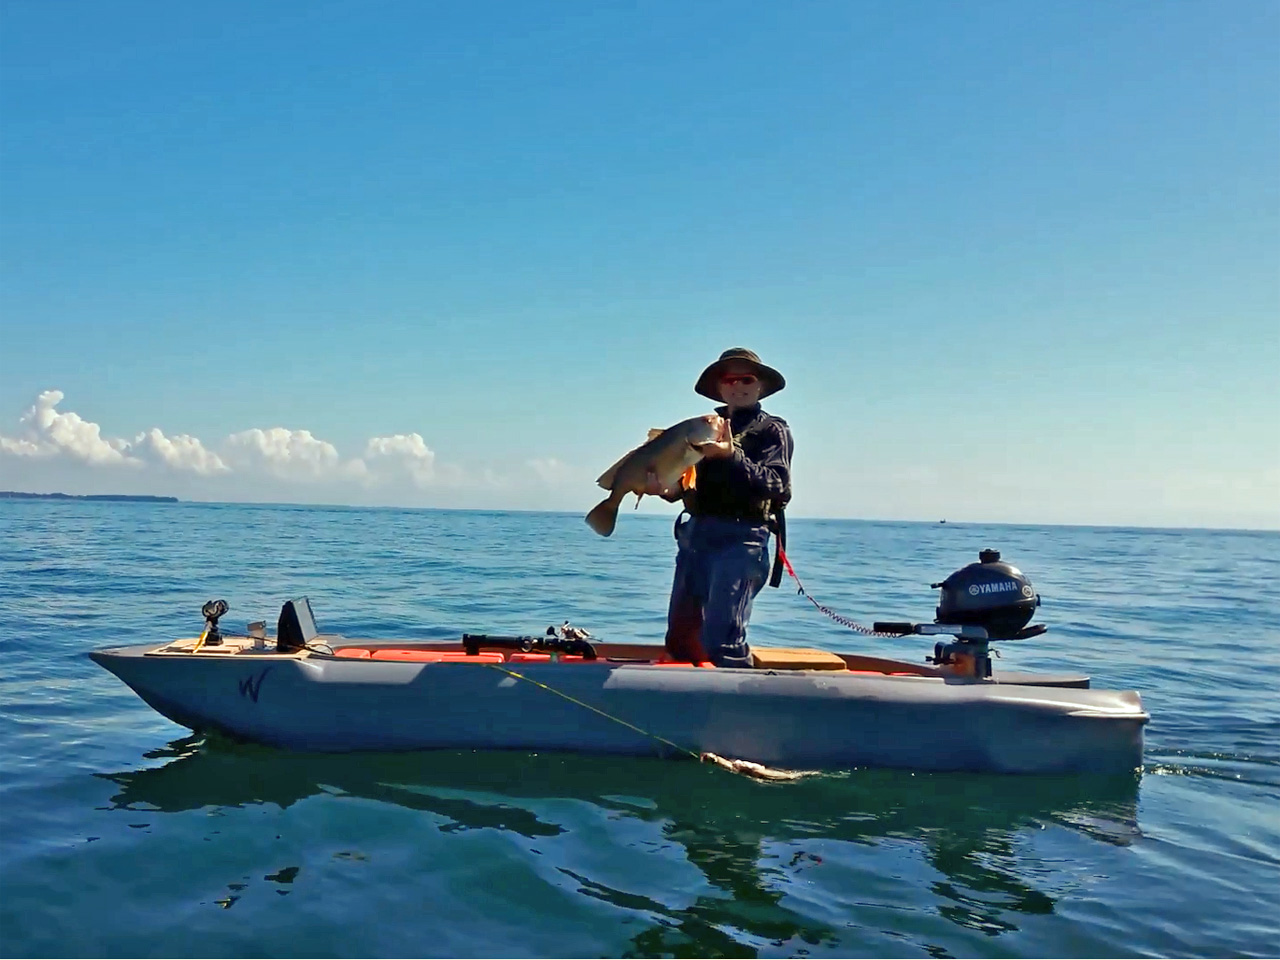 Fishing the great lakes in Canada